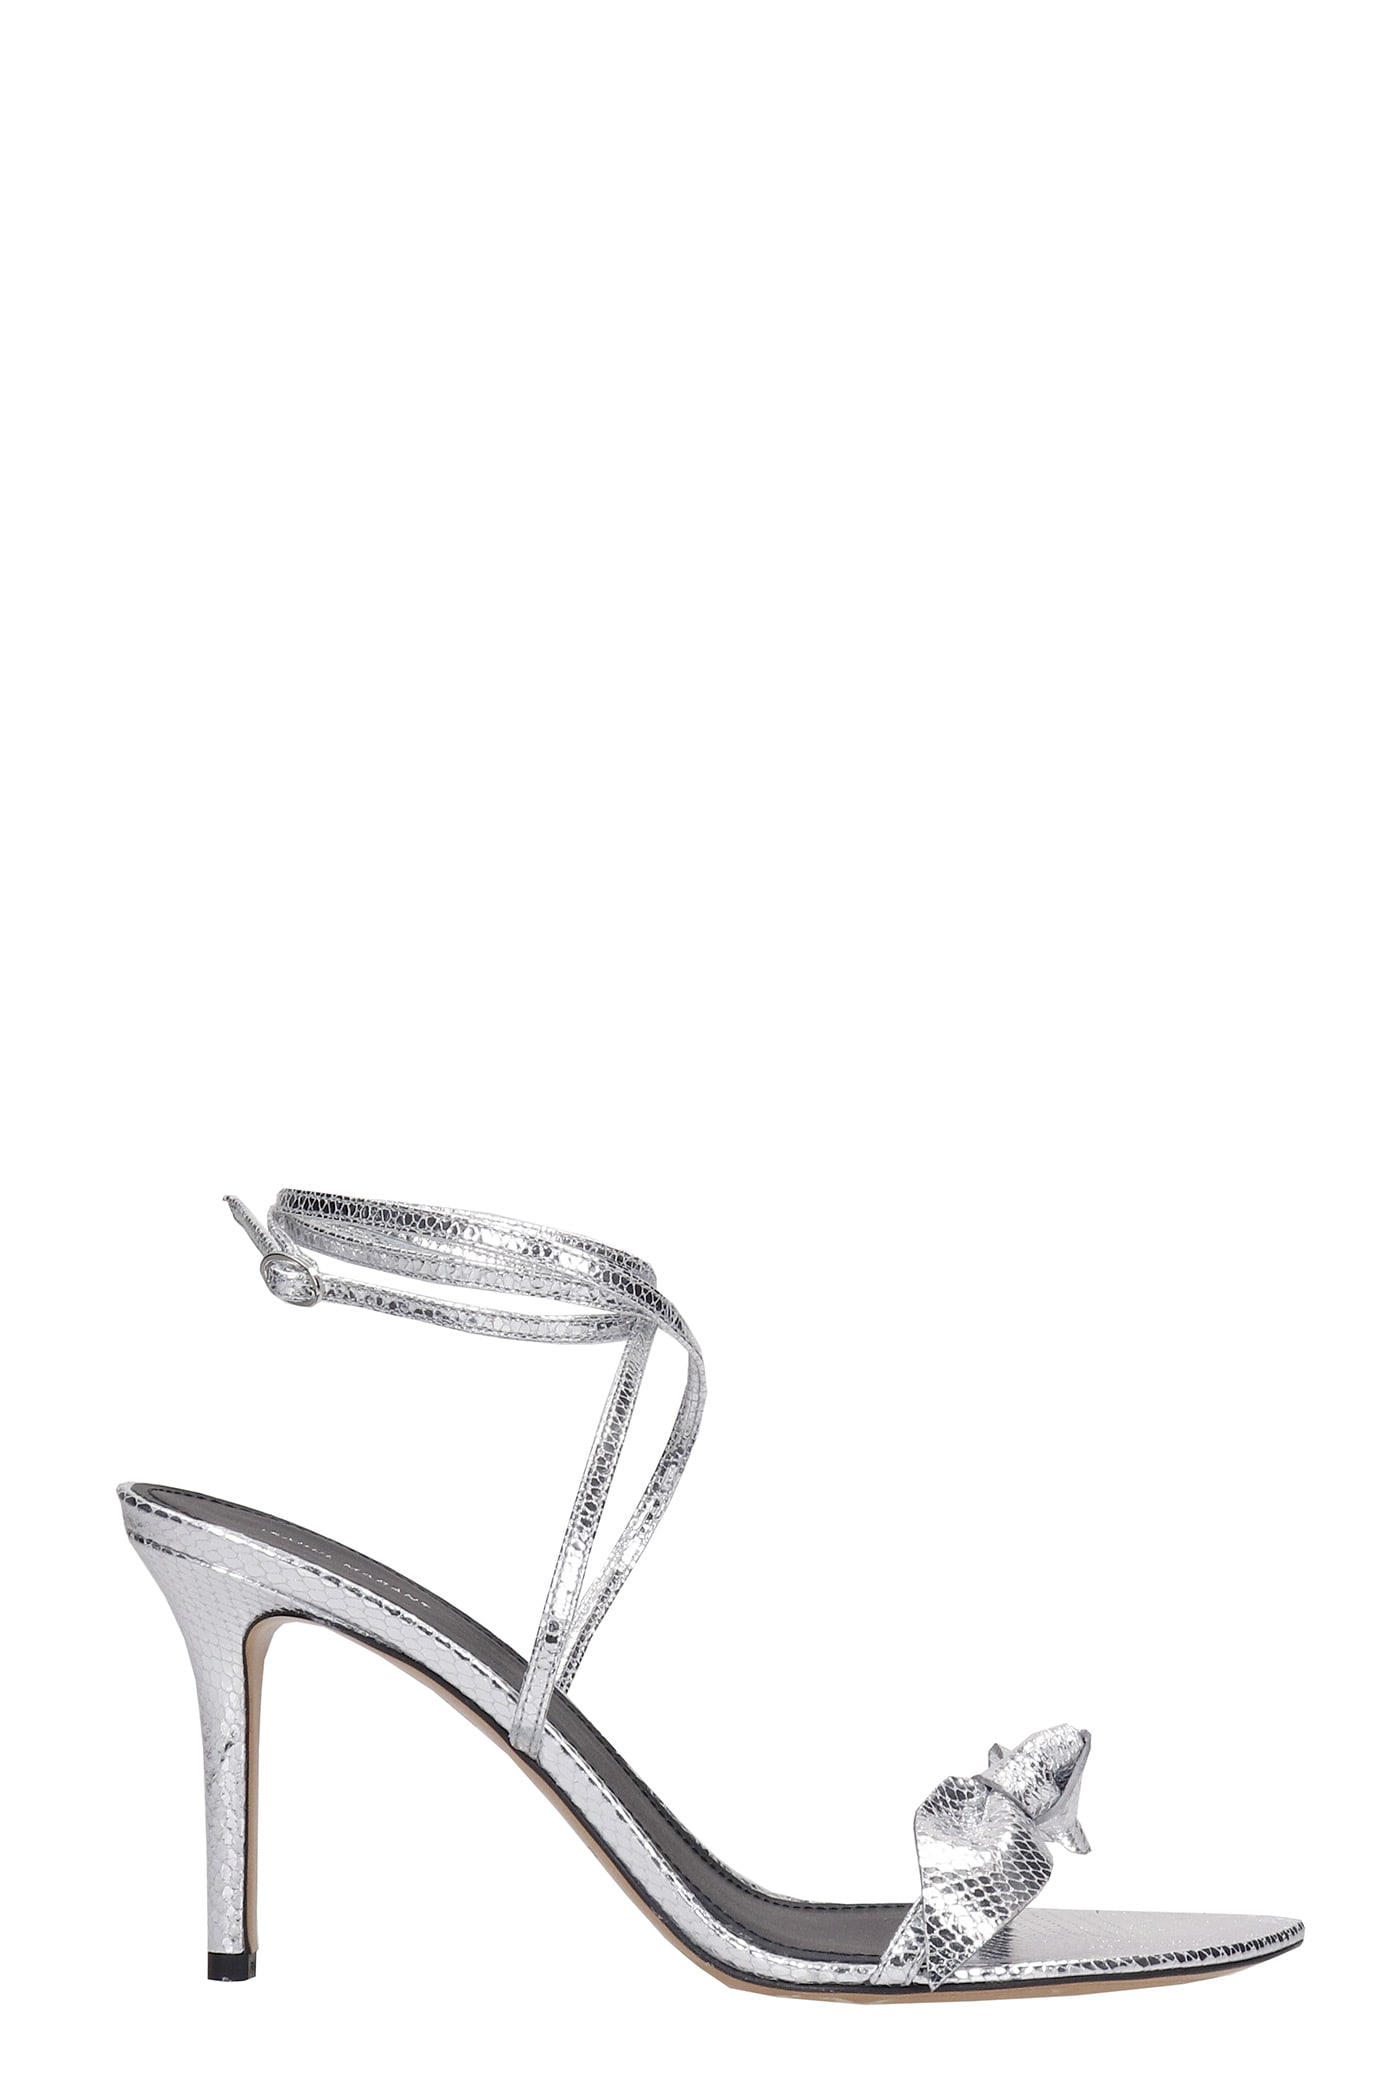 Buy Isabel Marant Alt Sandals In Silver Leather online, shop Isabel Marant shoes with free shipping